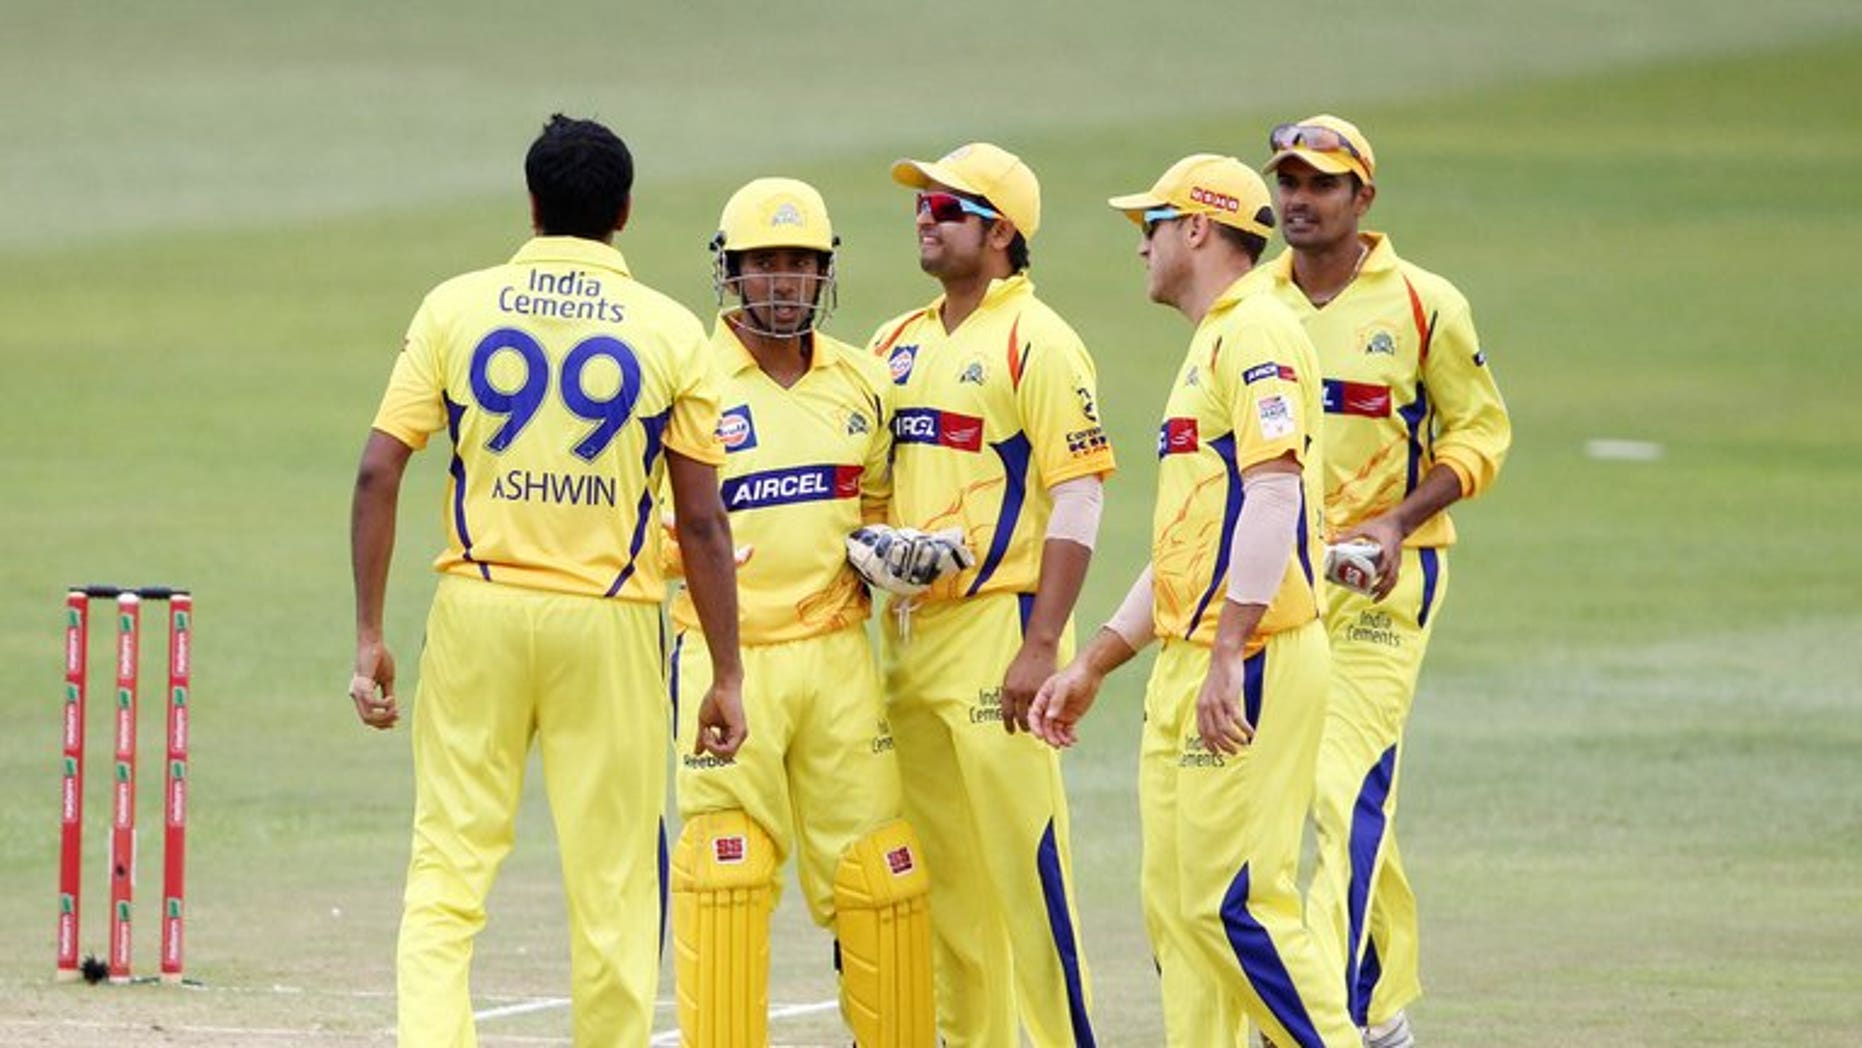 This file photo shows Chennai Super Kings players, during a T20 match in Durban, on October 22, 2012. A probe ordered by India's cricket chiefs into a betting scandal in the Indian Premier League has found no wrong-doing, allowing the the return of BCCI president N. Srinivasan, a source told AFP on Monday.